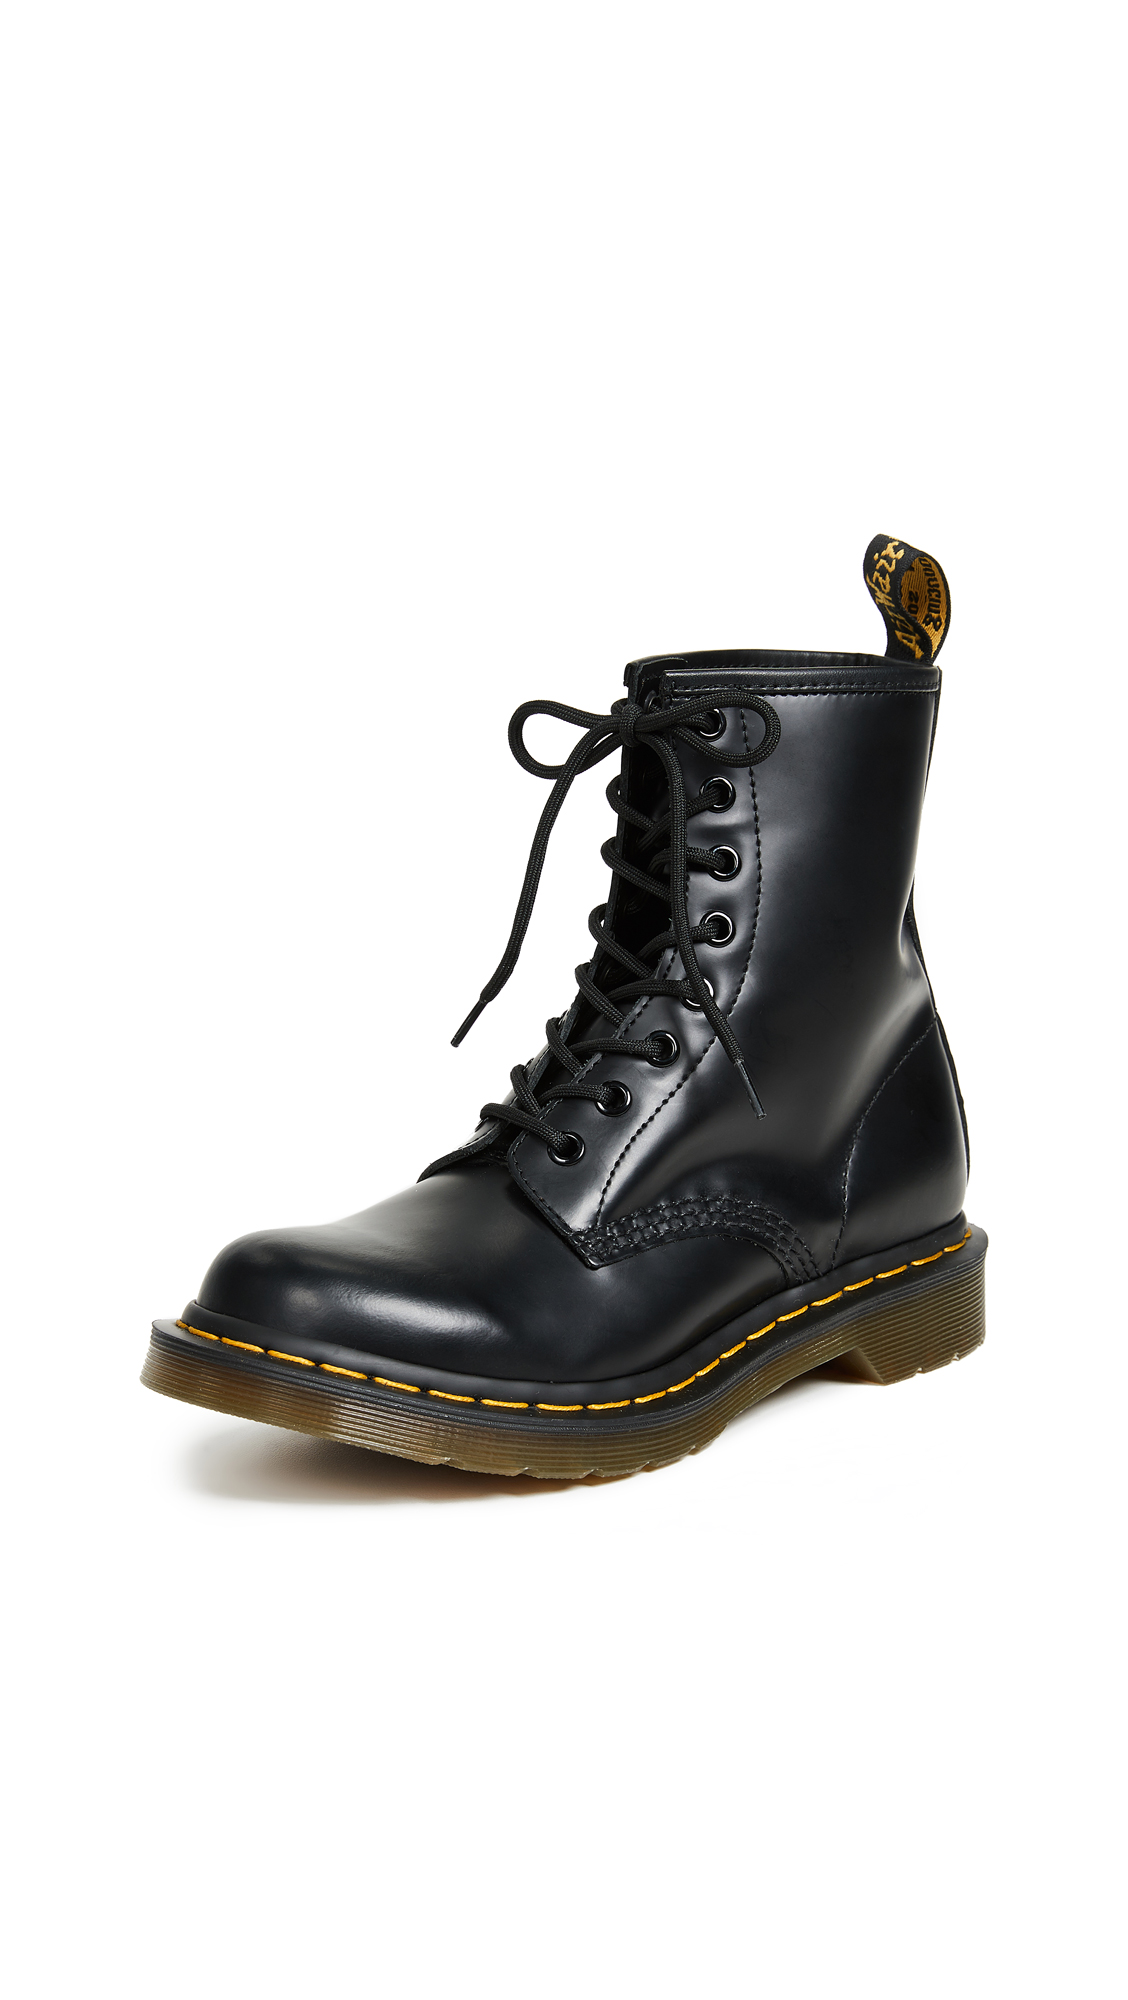 Dr. Martens 1460 8 Eye Boots - Black